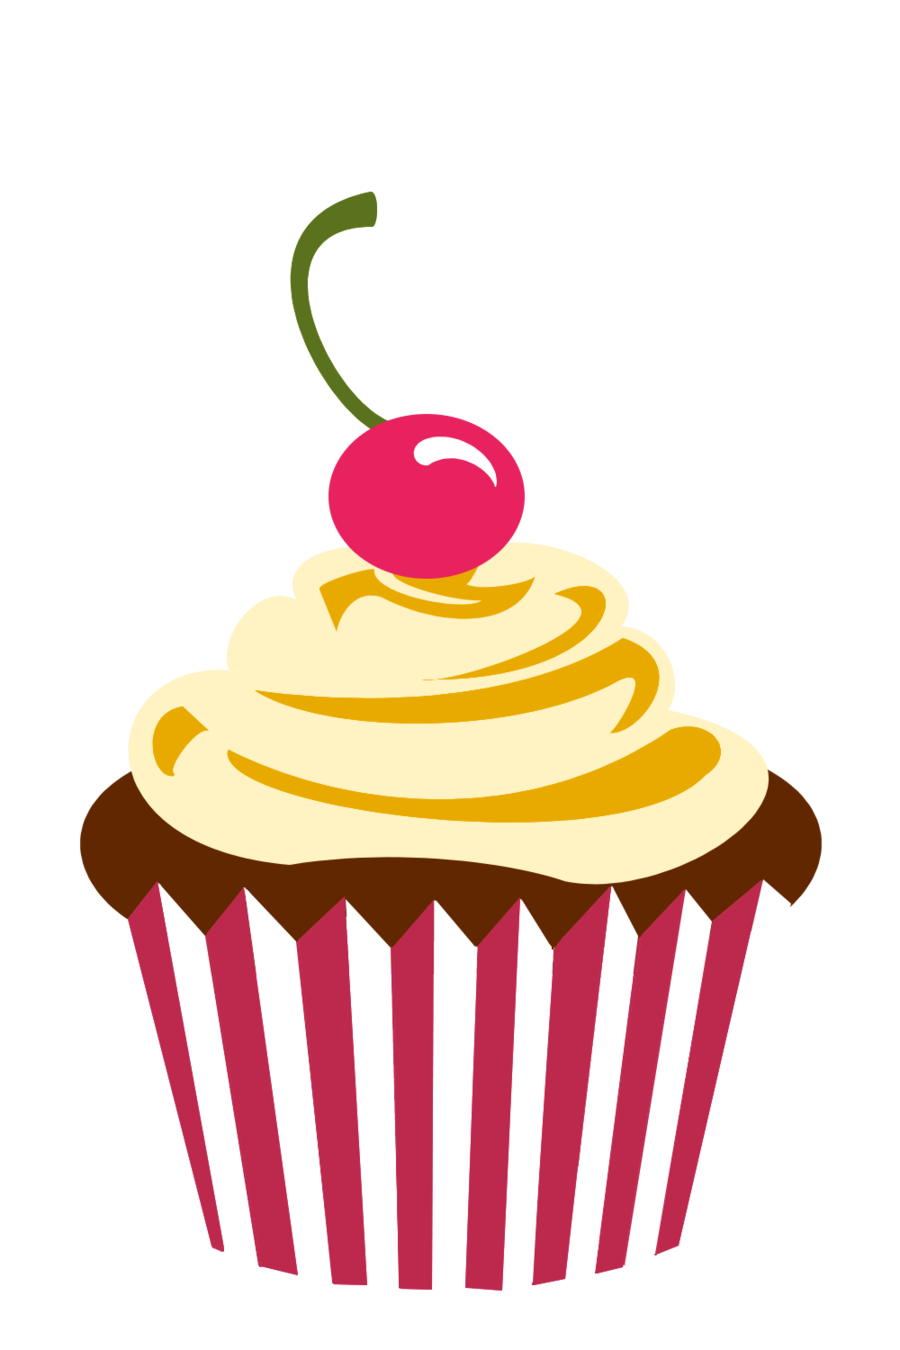 Logo png cherry chocolate. Clipart birthday cupcake